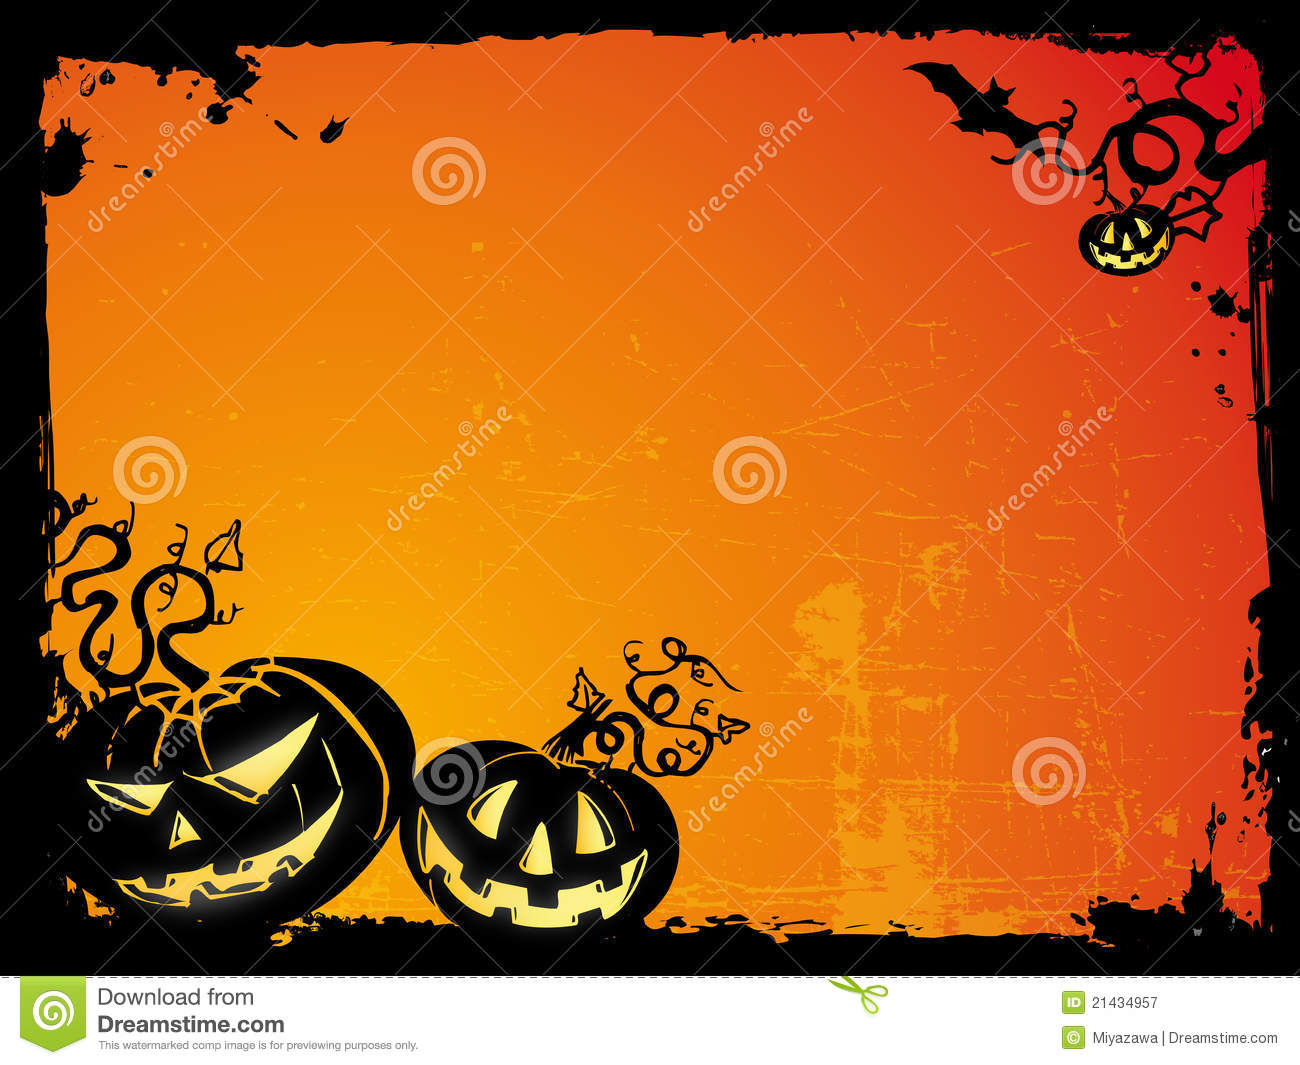 Halloween Backgrounds Royalty Free Stock Photography - Image: 21434957